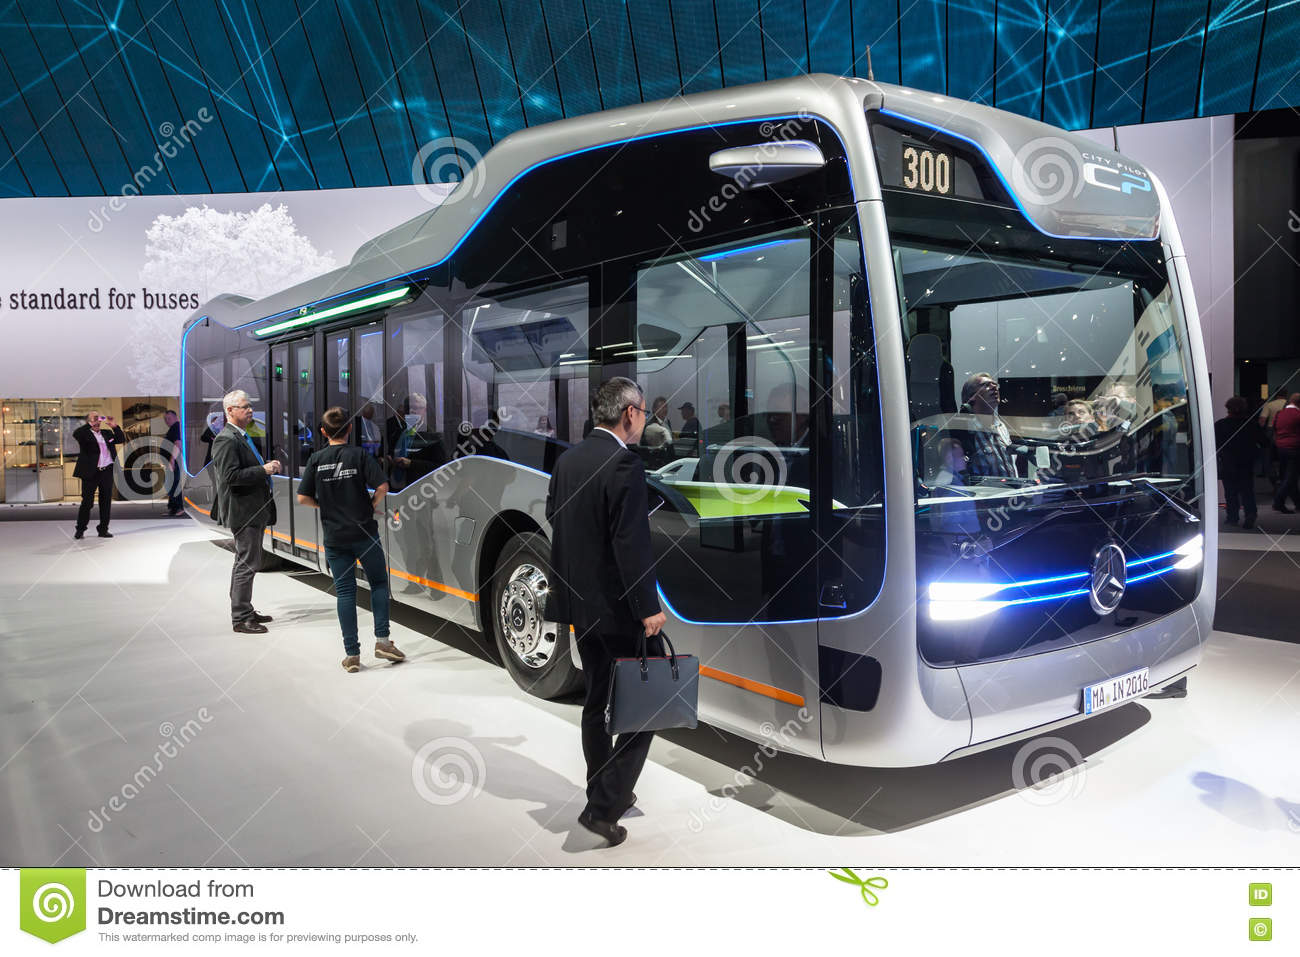 f48366bdc4 Mercedes Benz Future Bus editorial stock image. Image of public ...